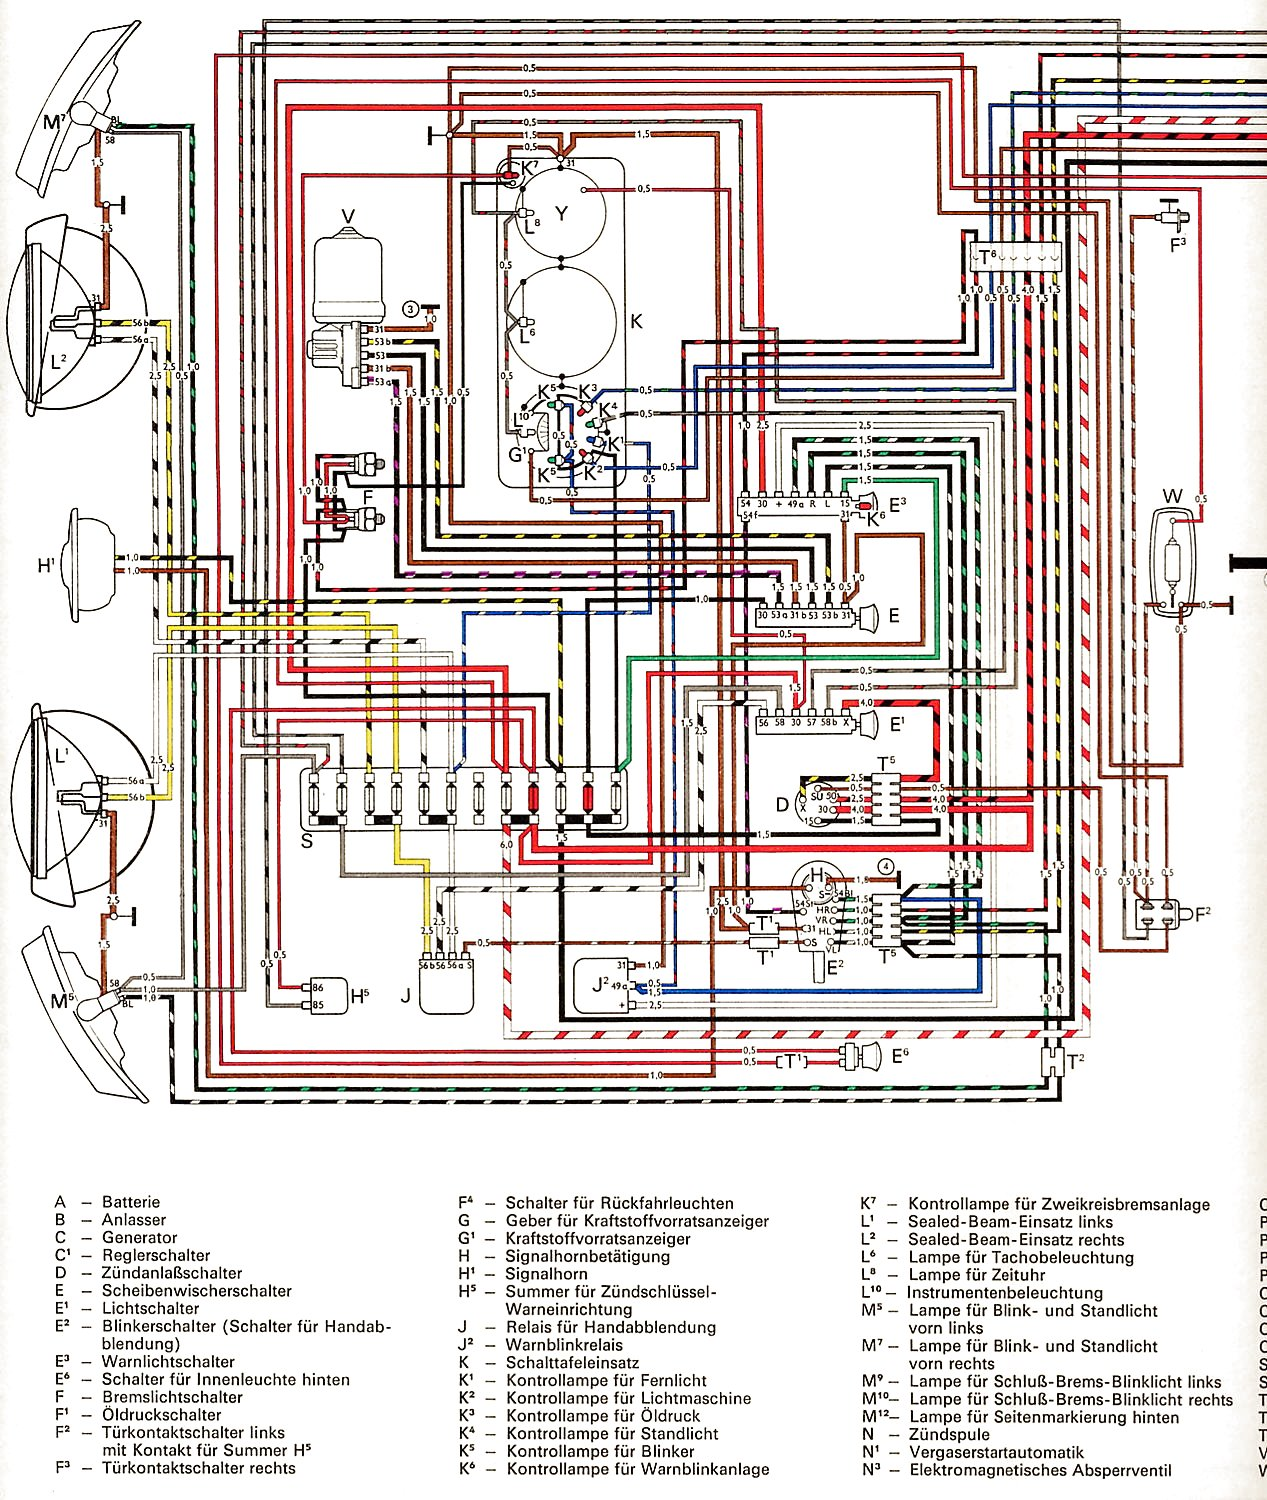 Transporter_USA_from_August_1970 1 vw wiring diagrams beetle wiring diagram to fix a/c fan at readyjetset.co